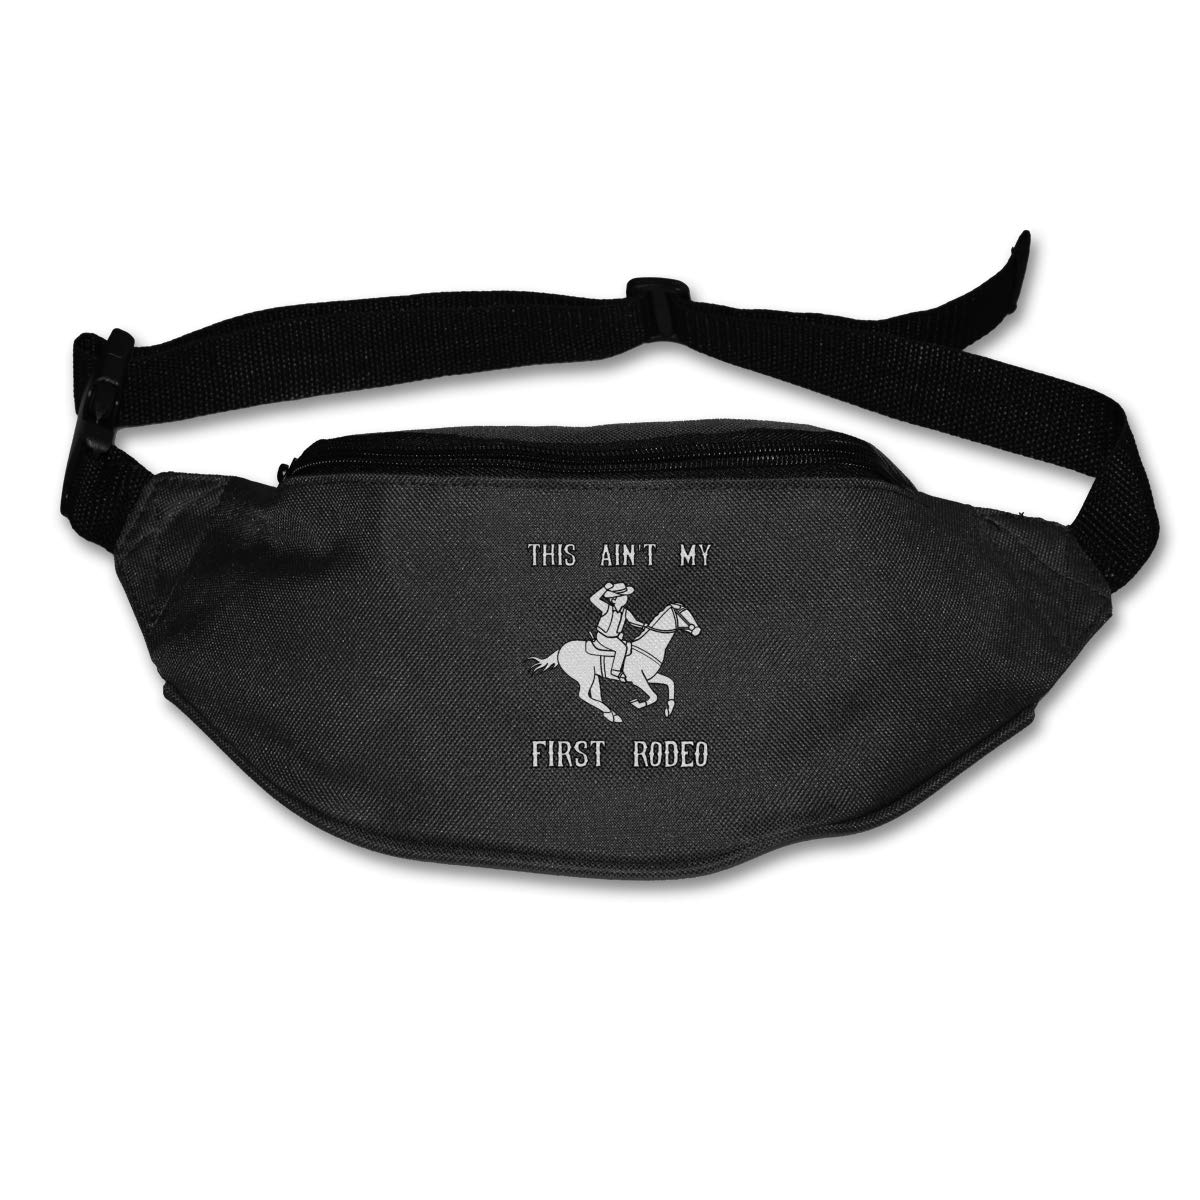 This Aint My First Rodeo Sport Waist Pack Fanny Pack Adjustable For Hike